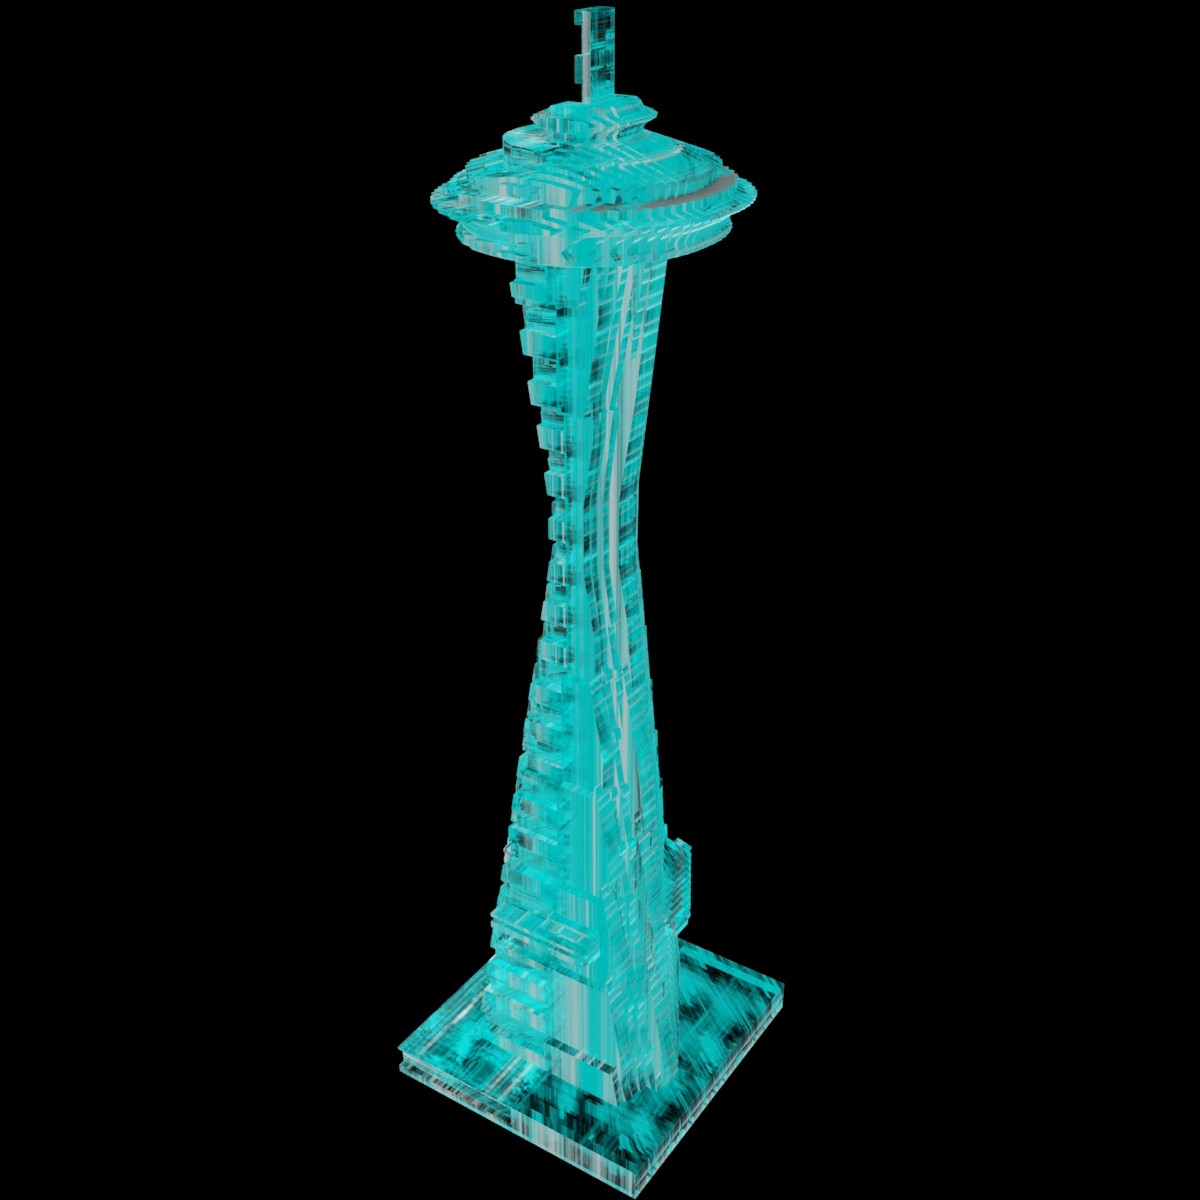 space_needle_sliced1.jpg